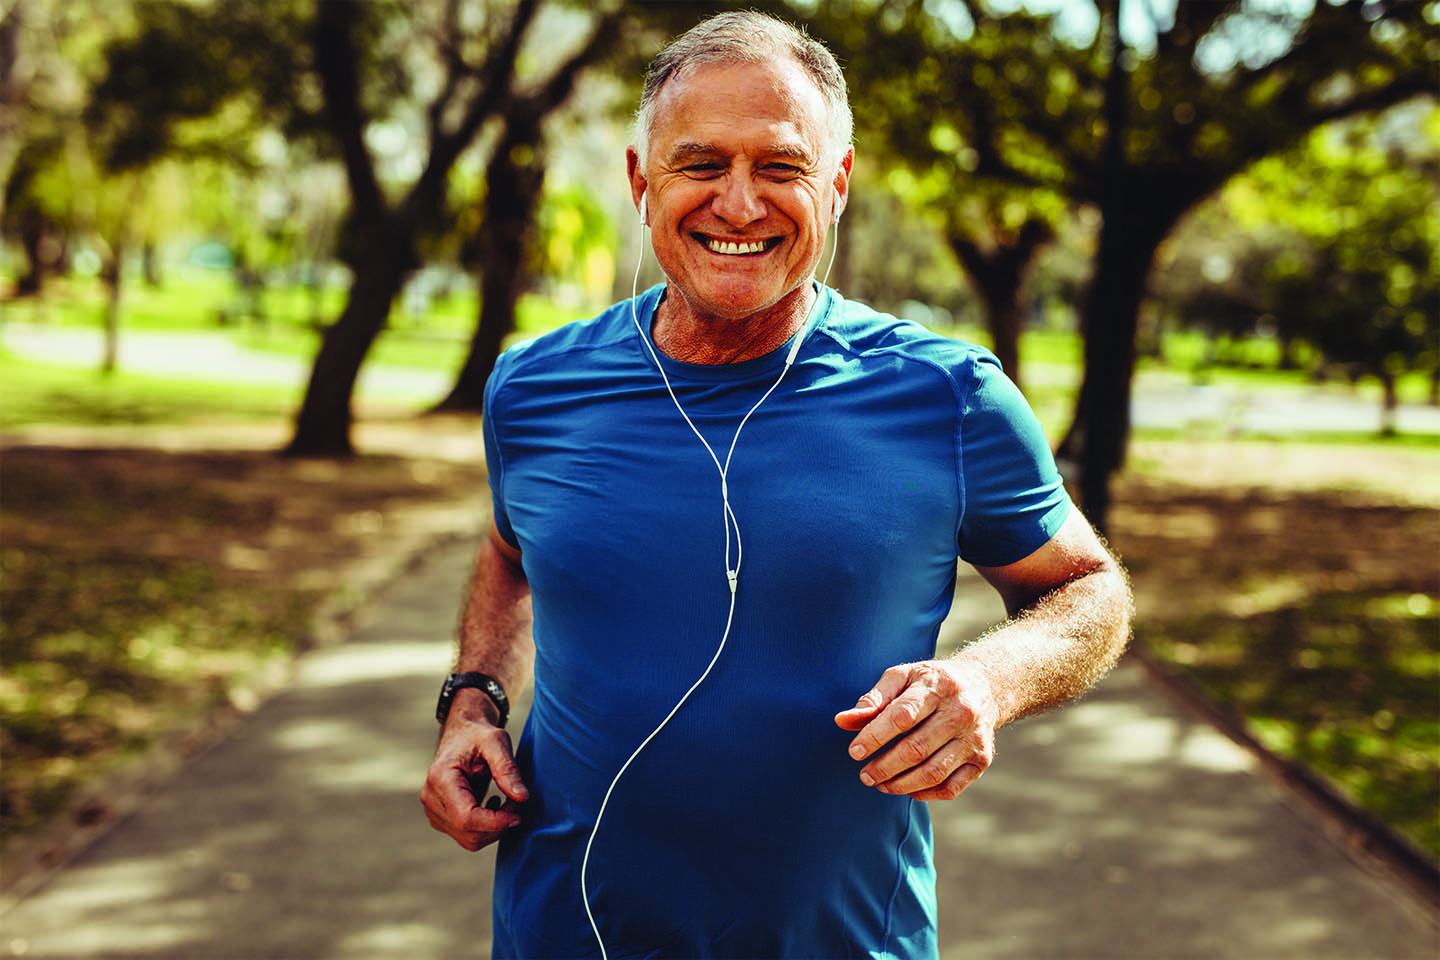 Older man running and smiling